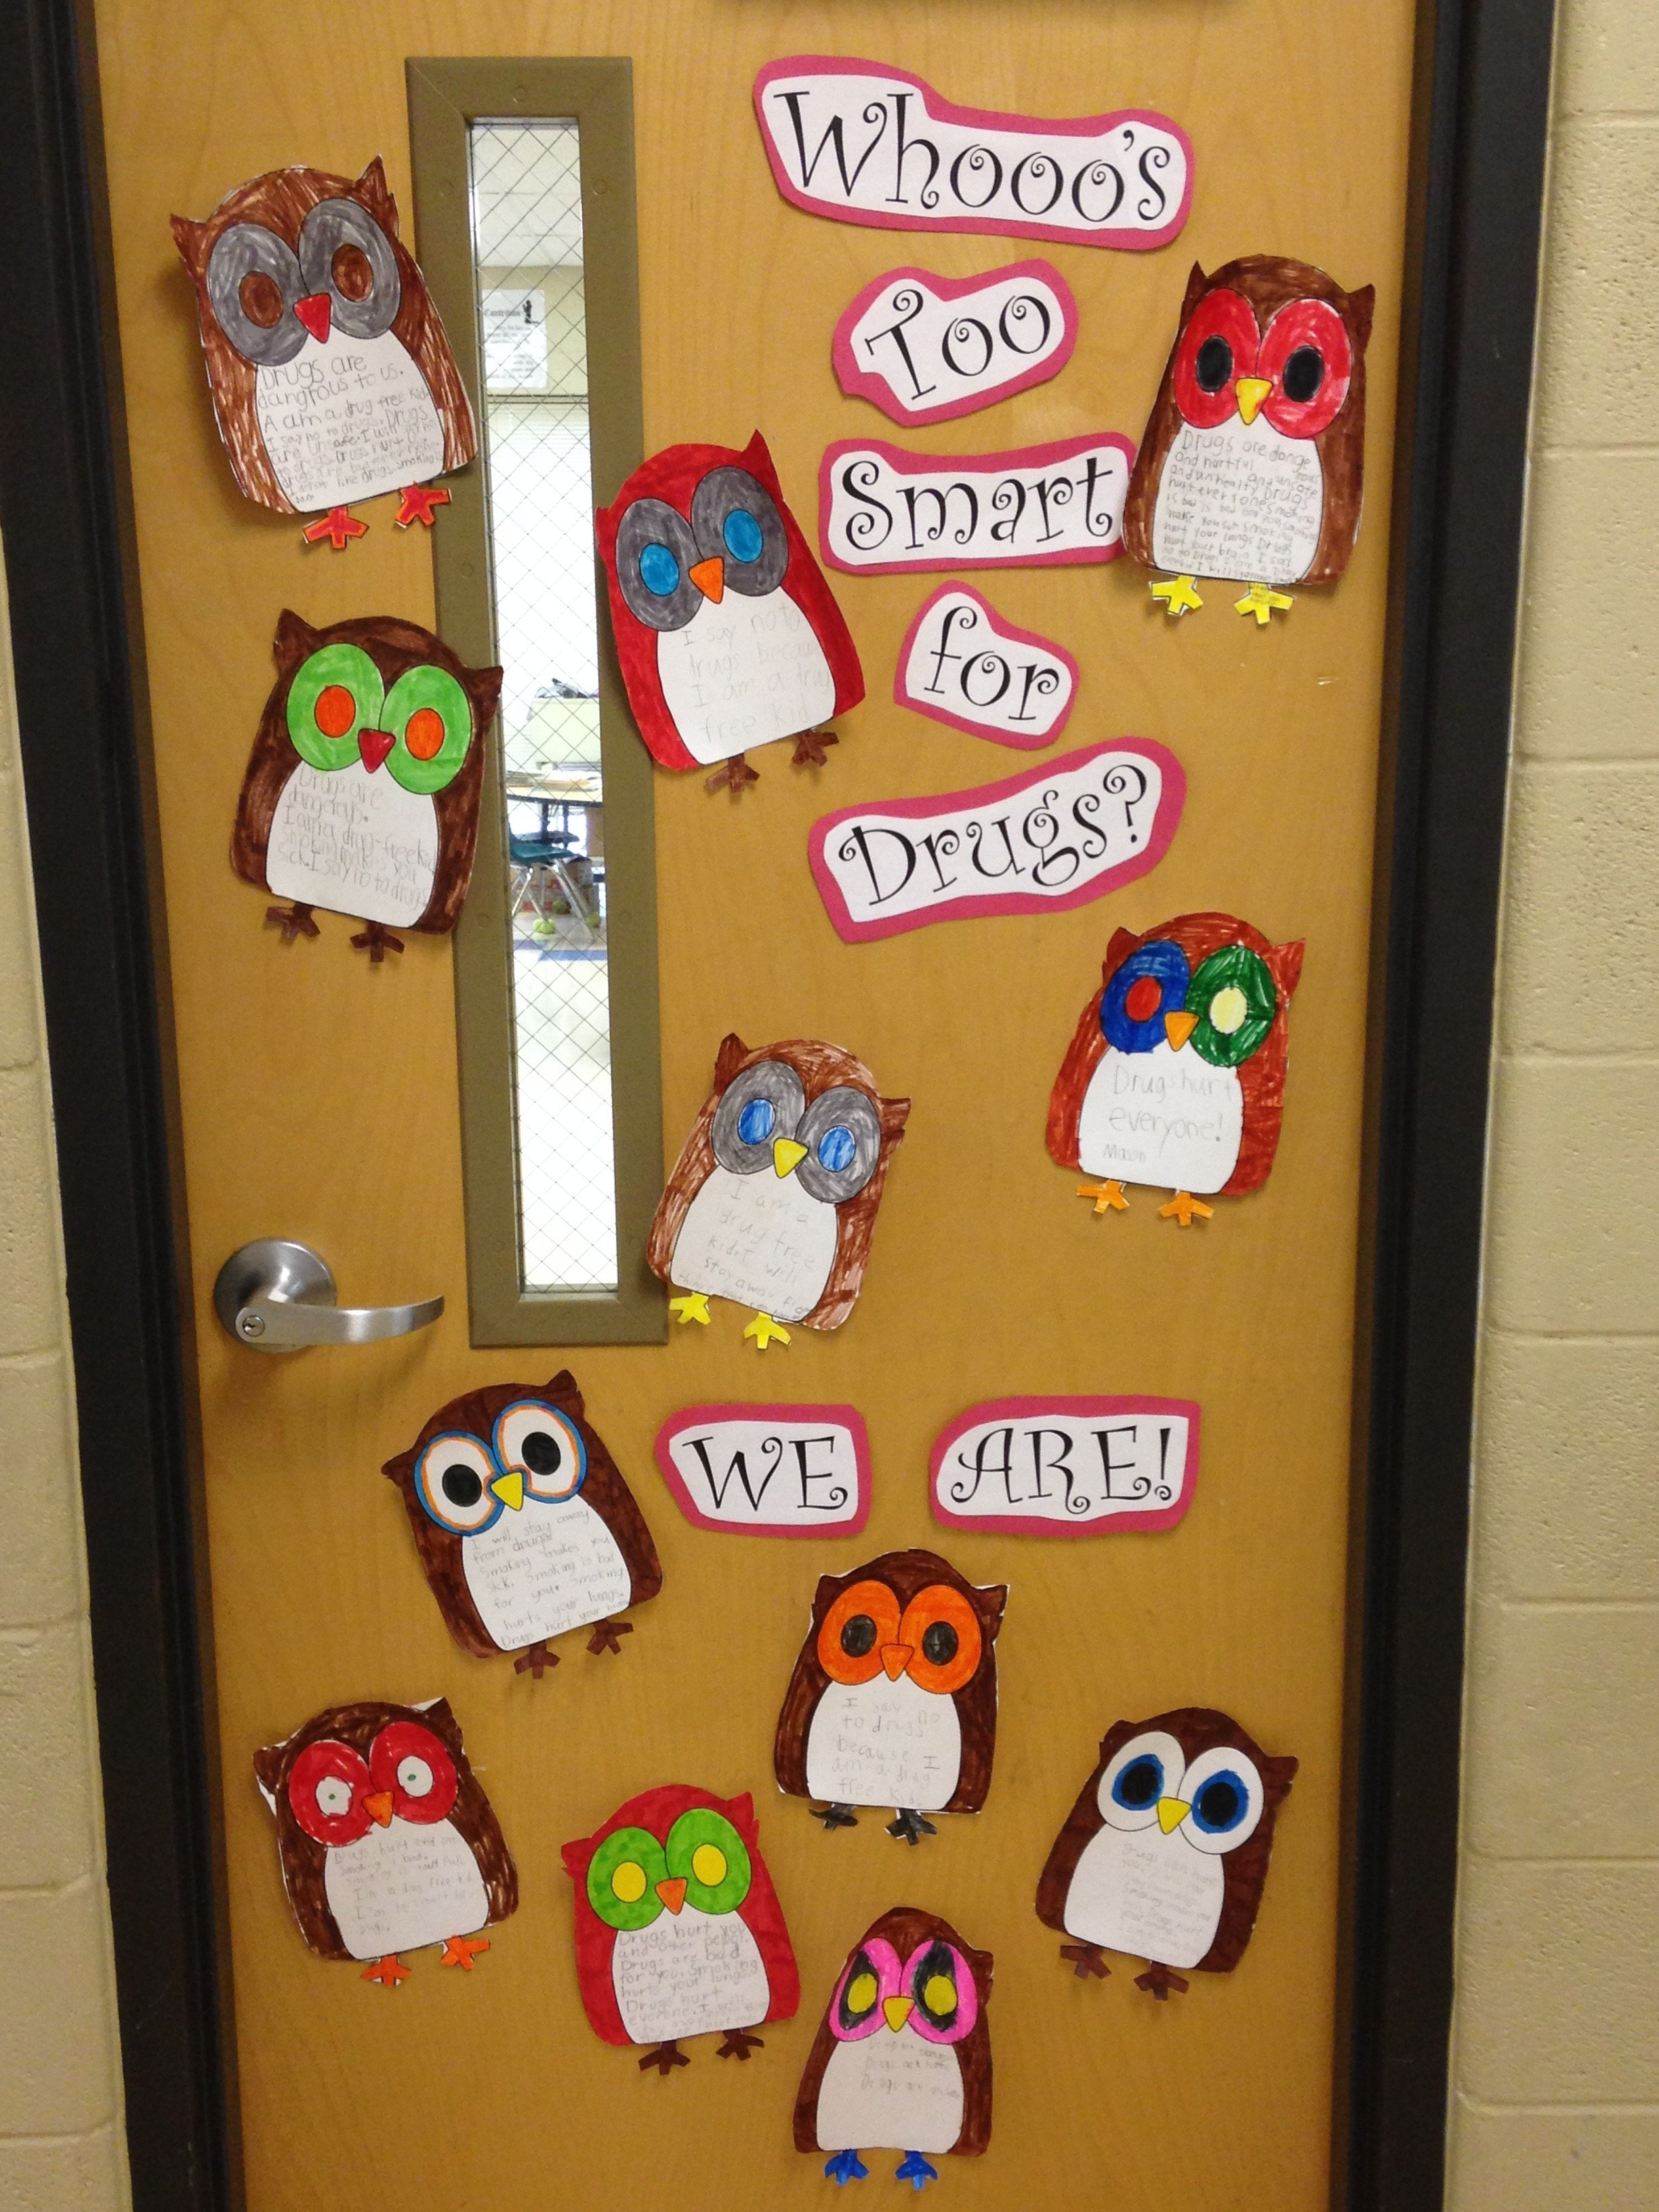 10 Famous Ideas For Red Ribbon Week red ribbon week door decorations saint john vianney catholic school 3 2020